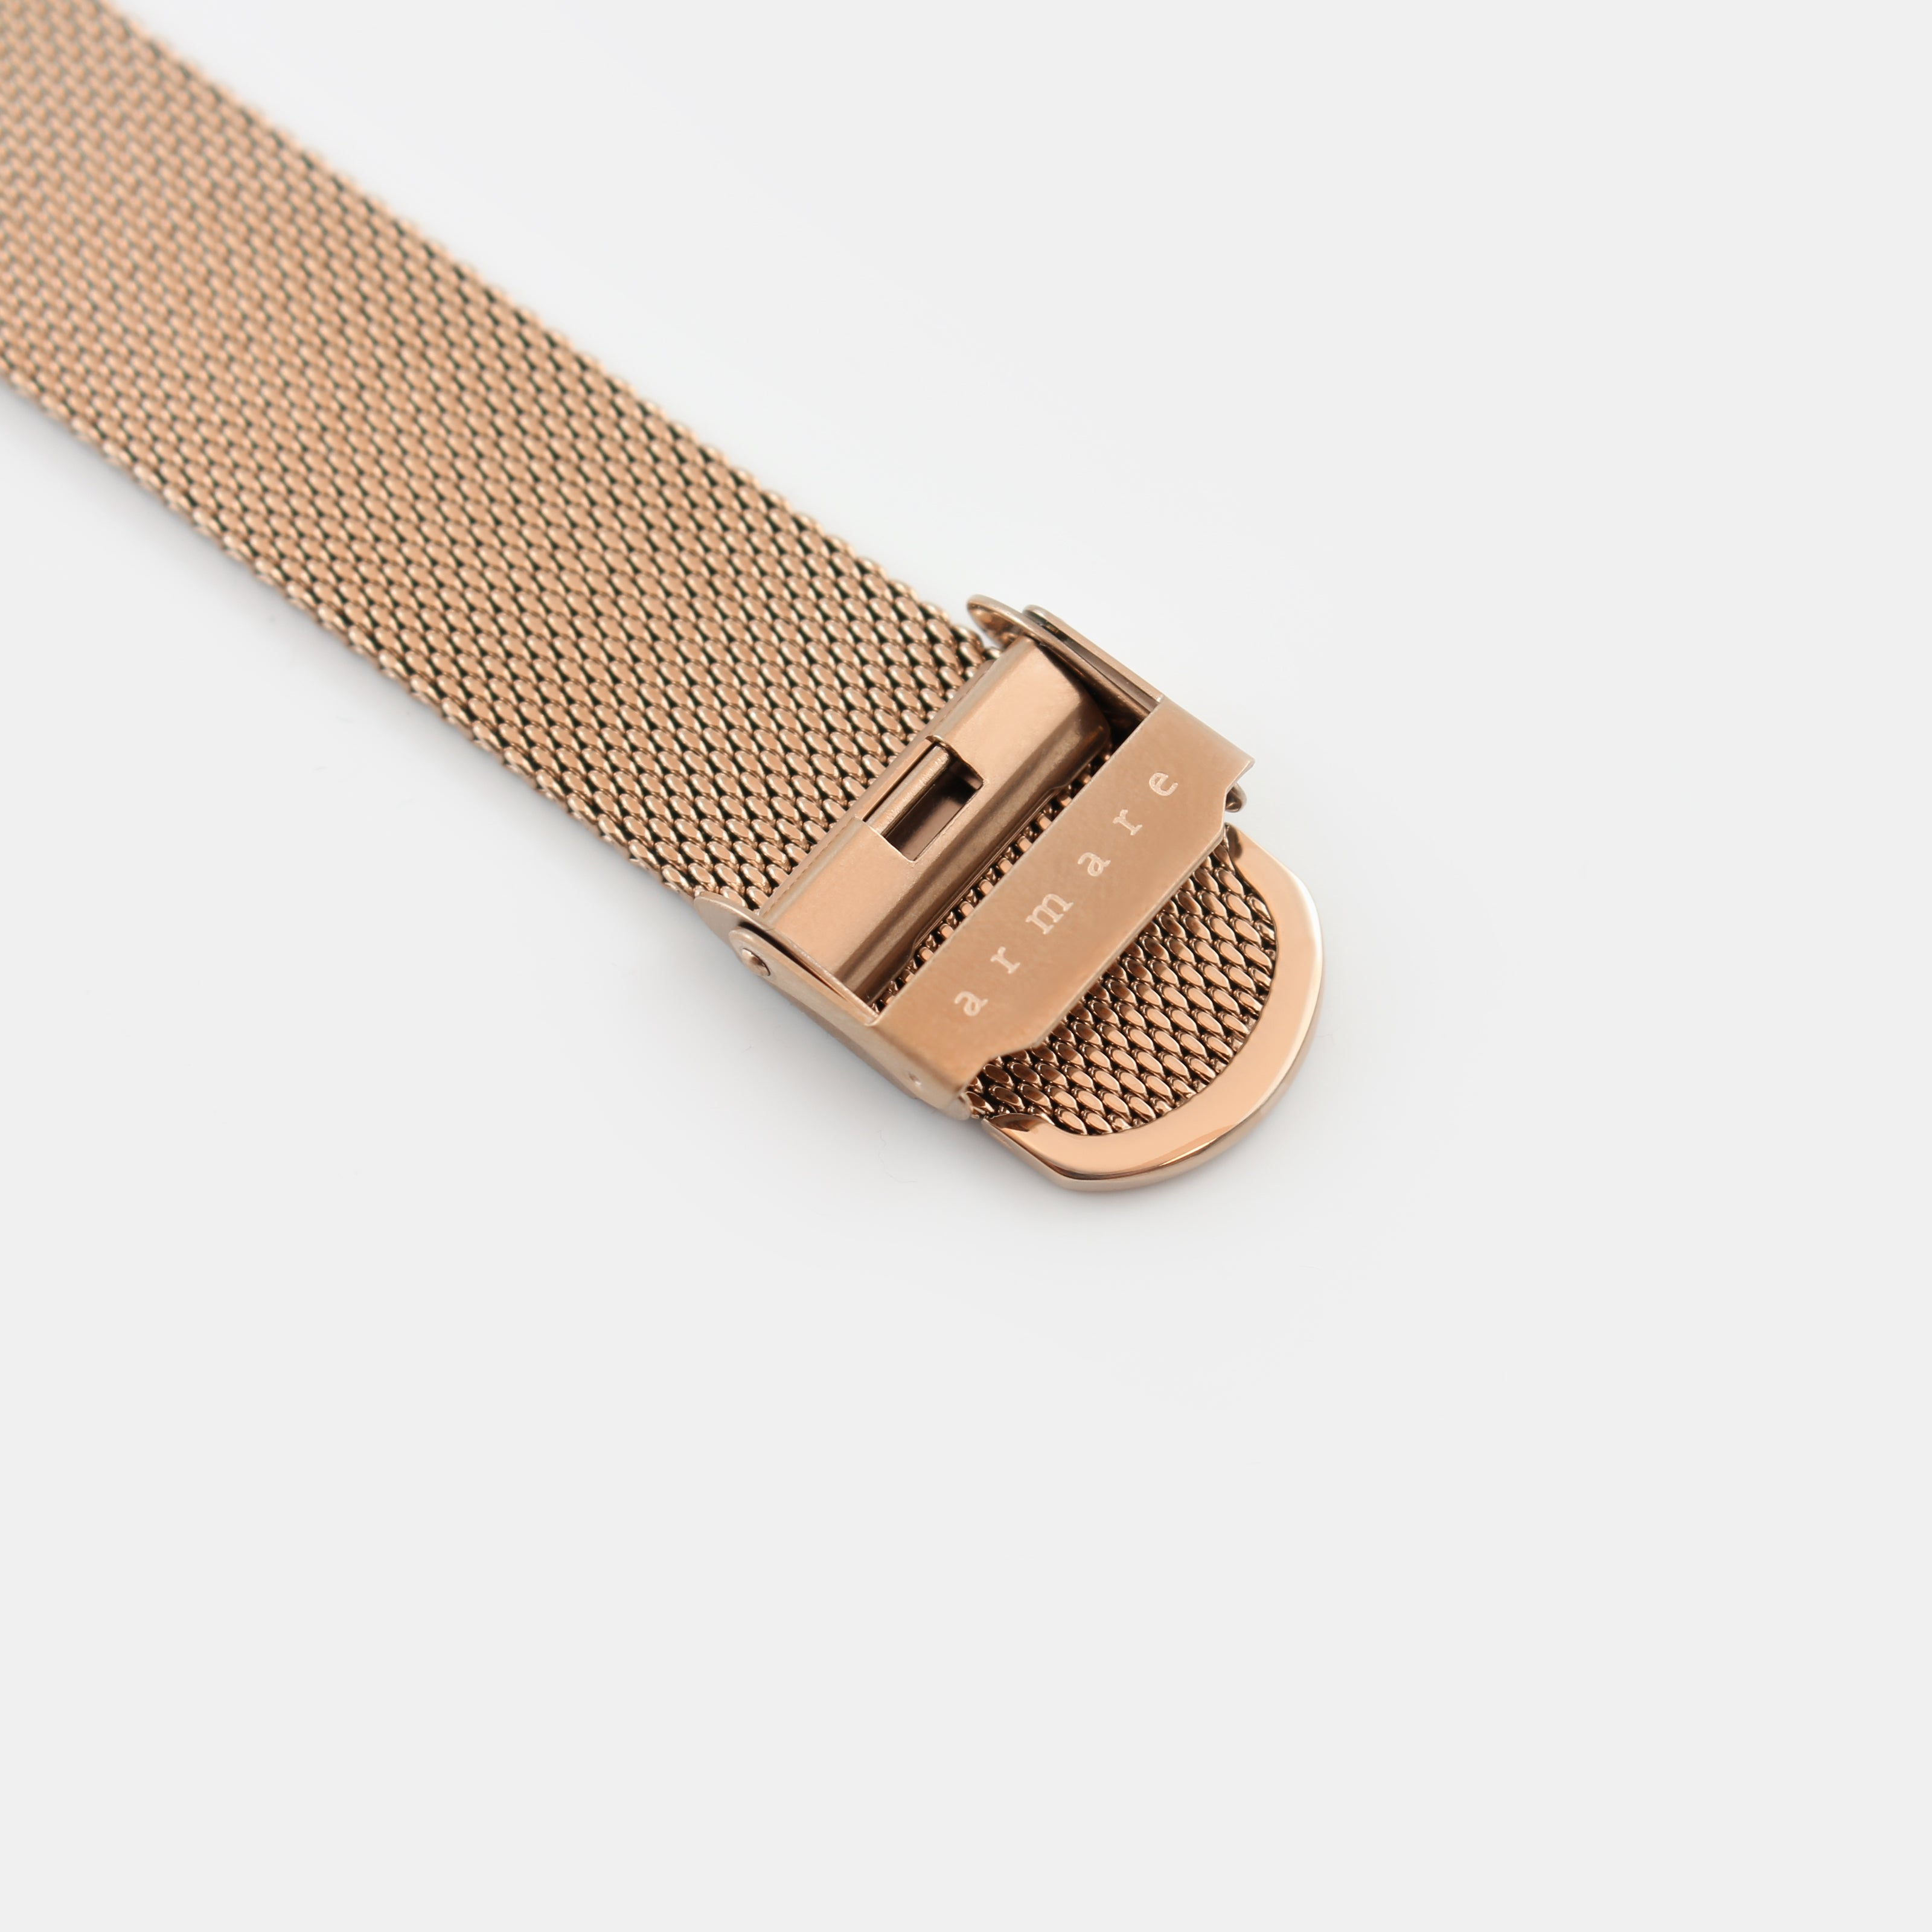 armare-watches-lechrono41-mesh-rosegold-band